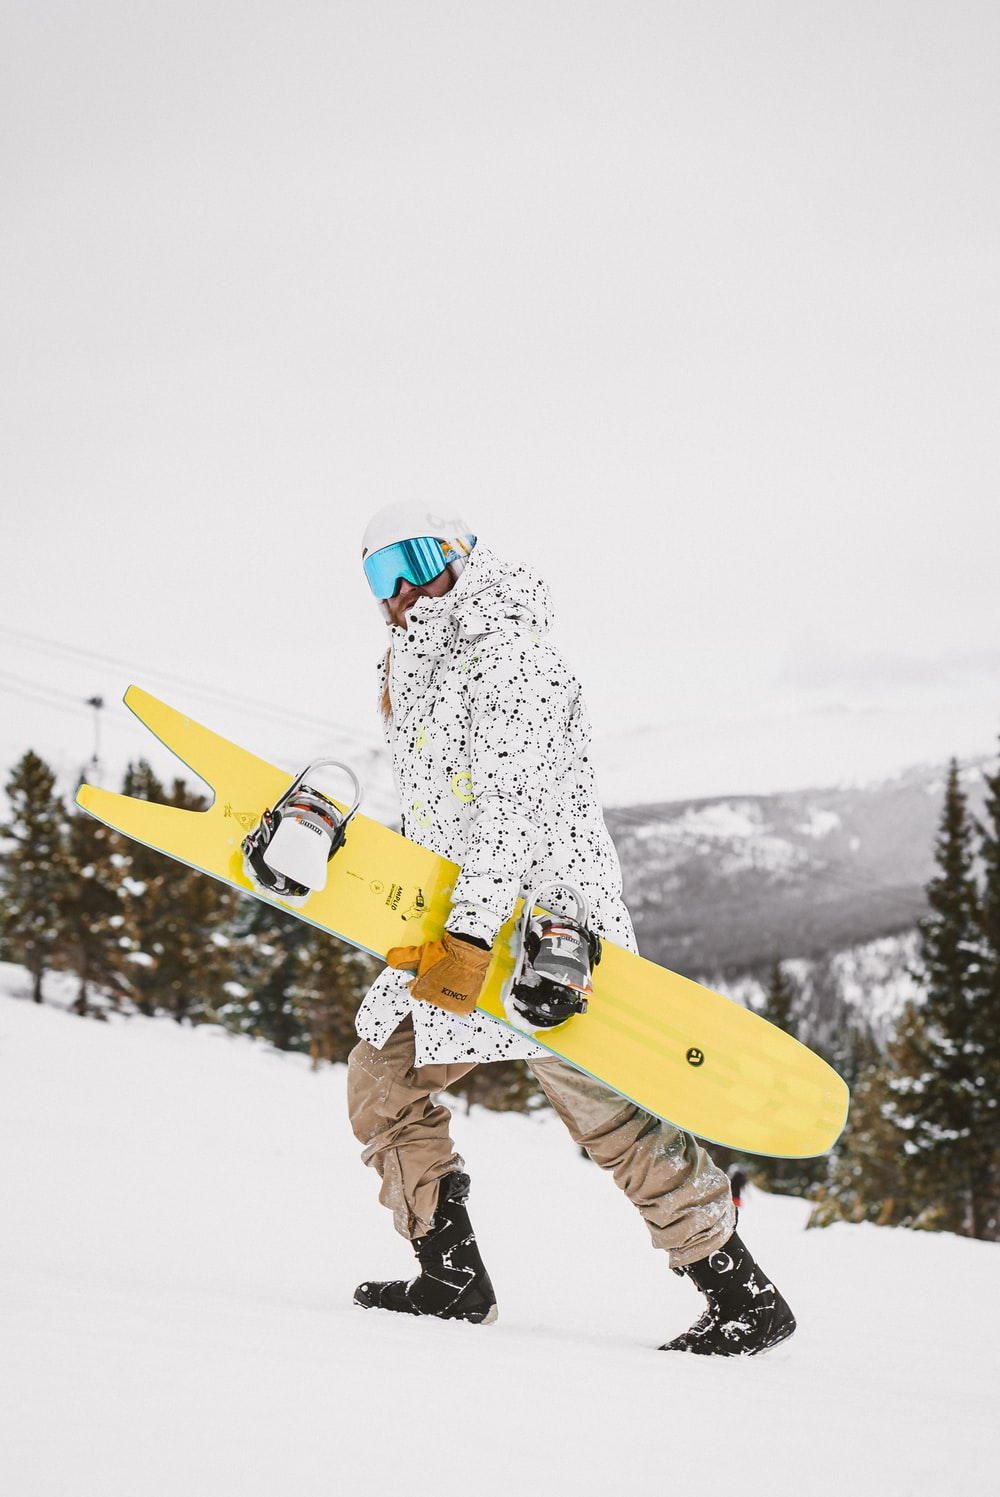 man in white and green jacket and brown pants holding yellow snowboard during daytime